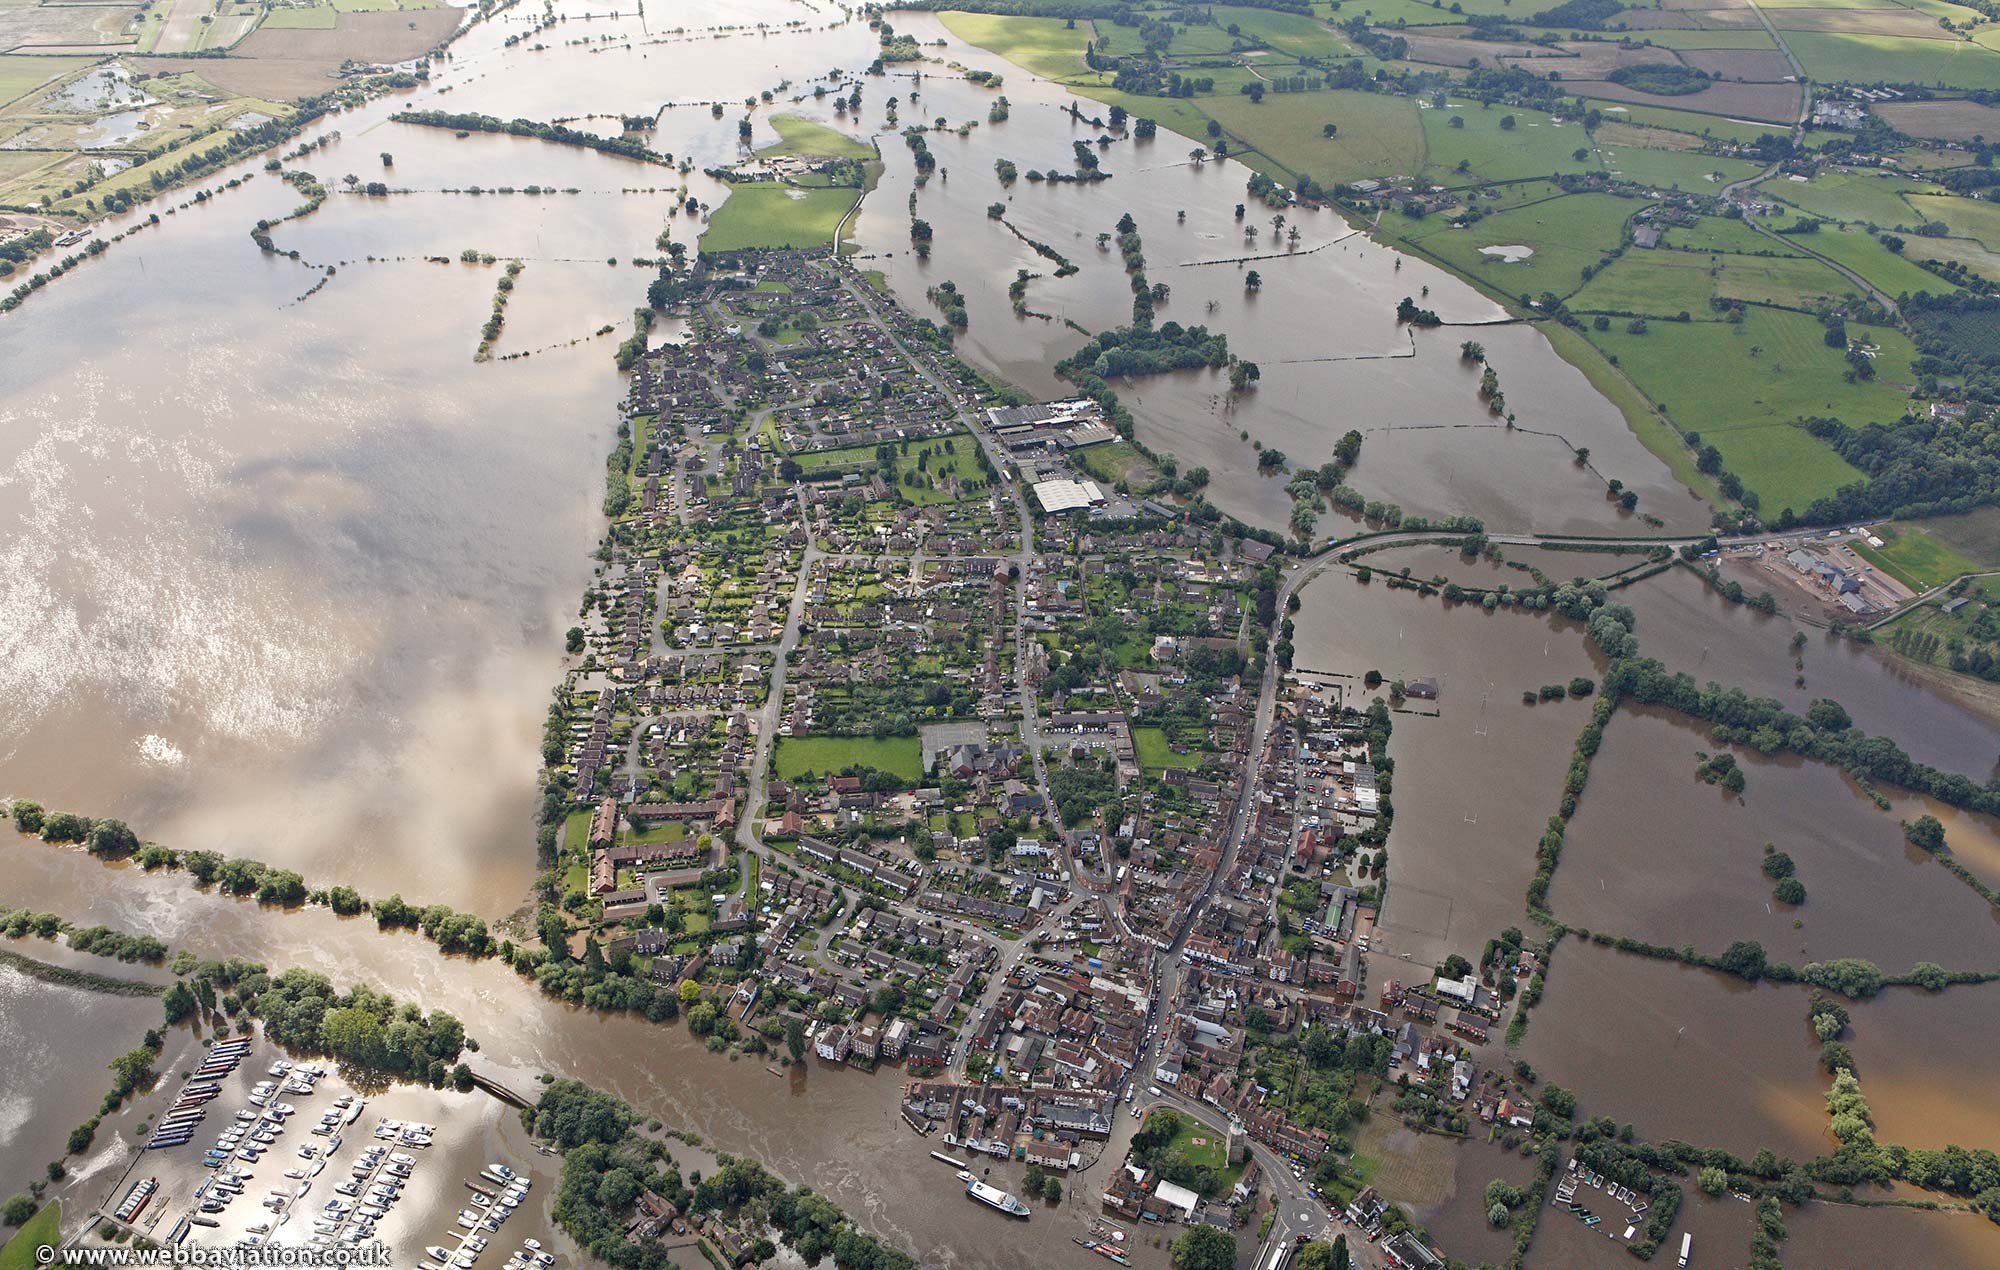 upton-upon-severn-worcestershire-flood-ba18281.jpg